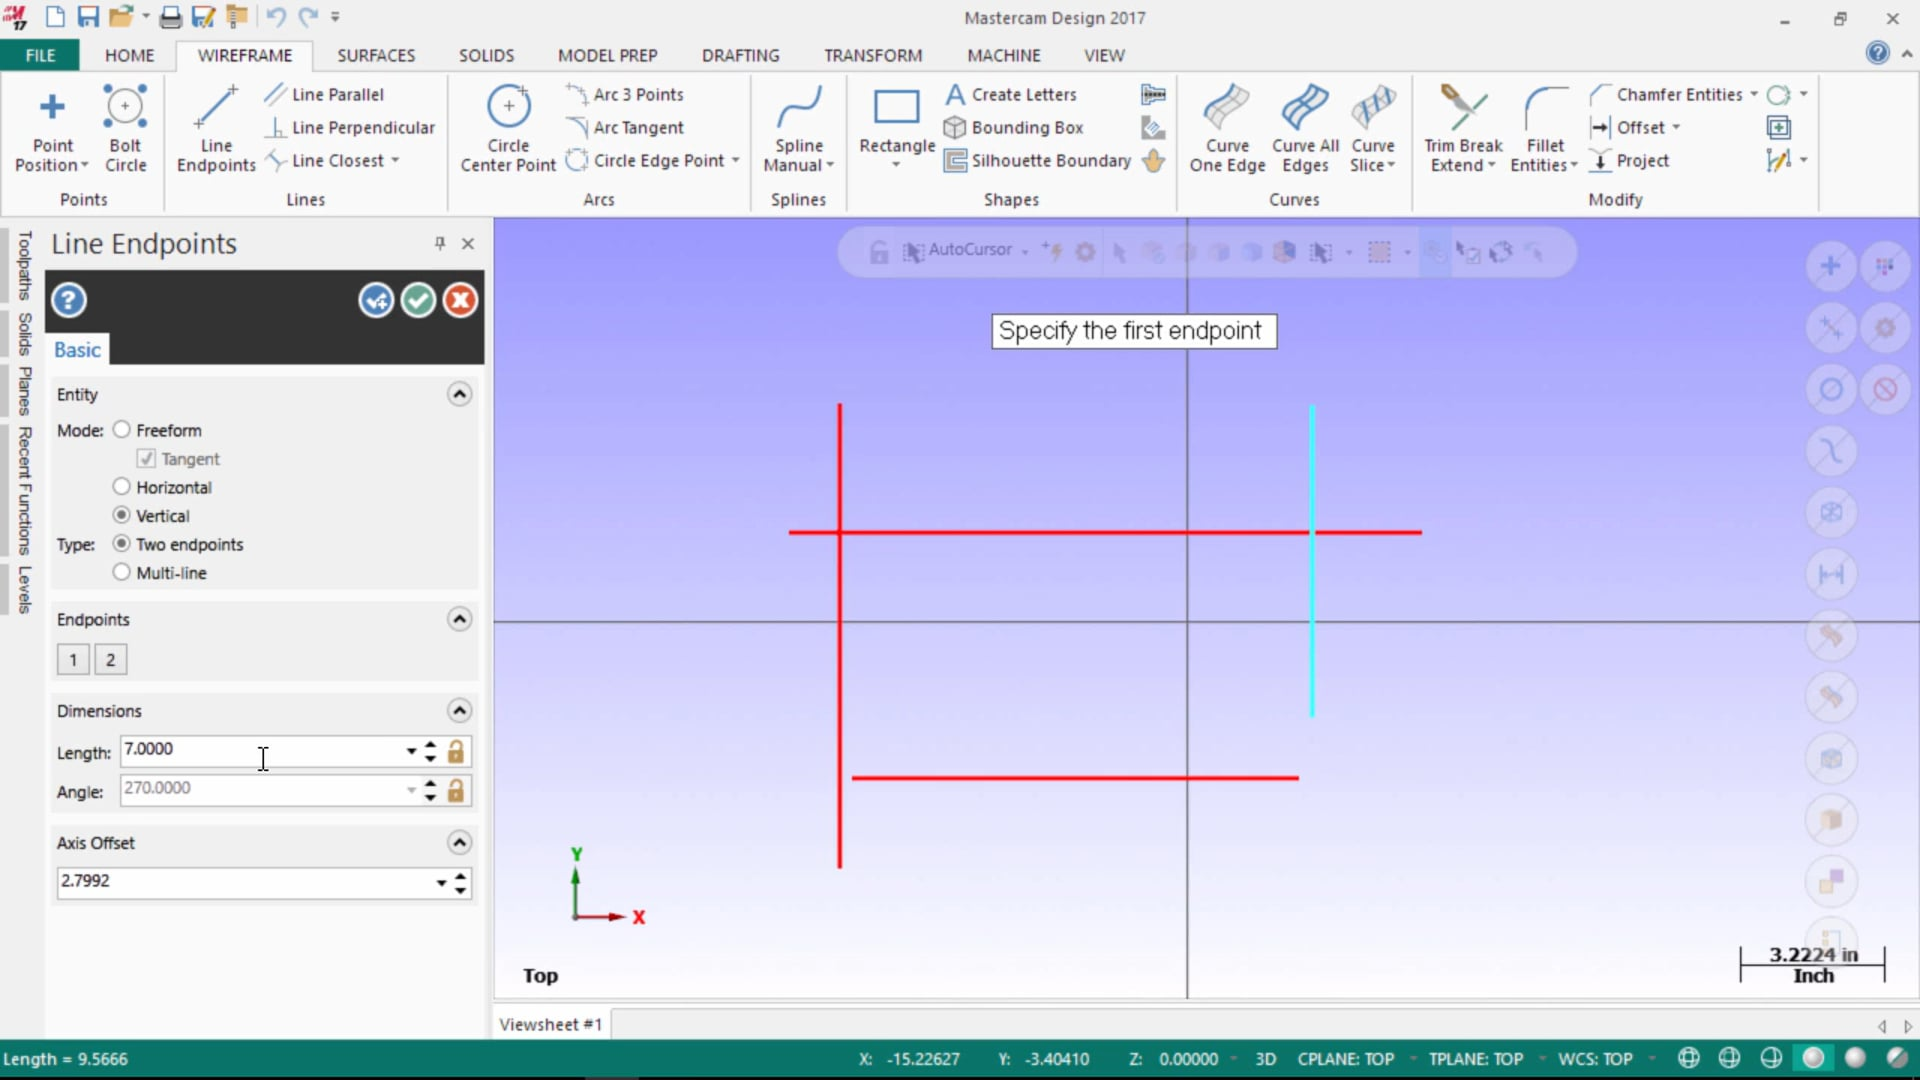 Points, Lines, Rectangles, Rectangular Shapes